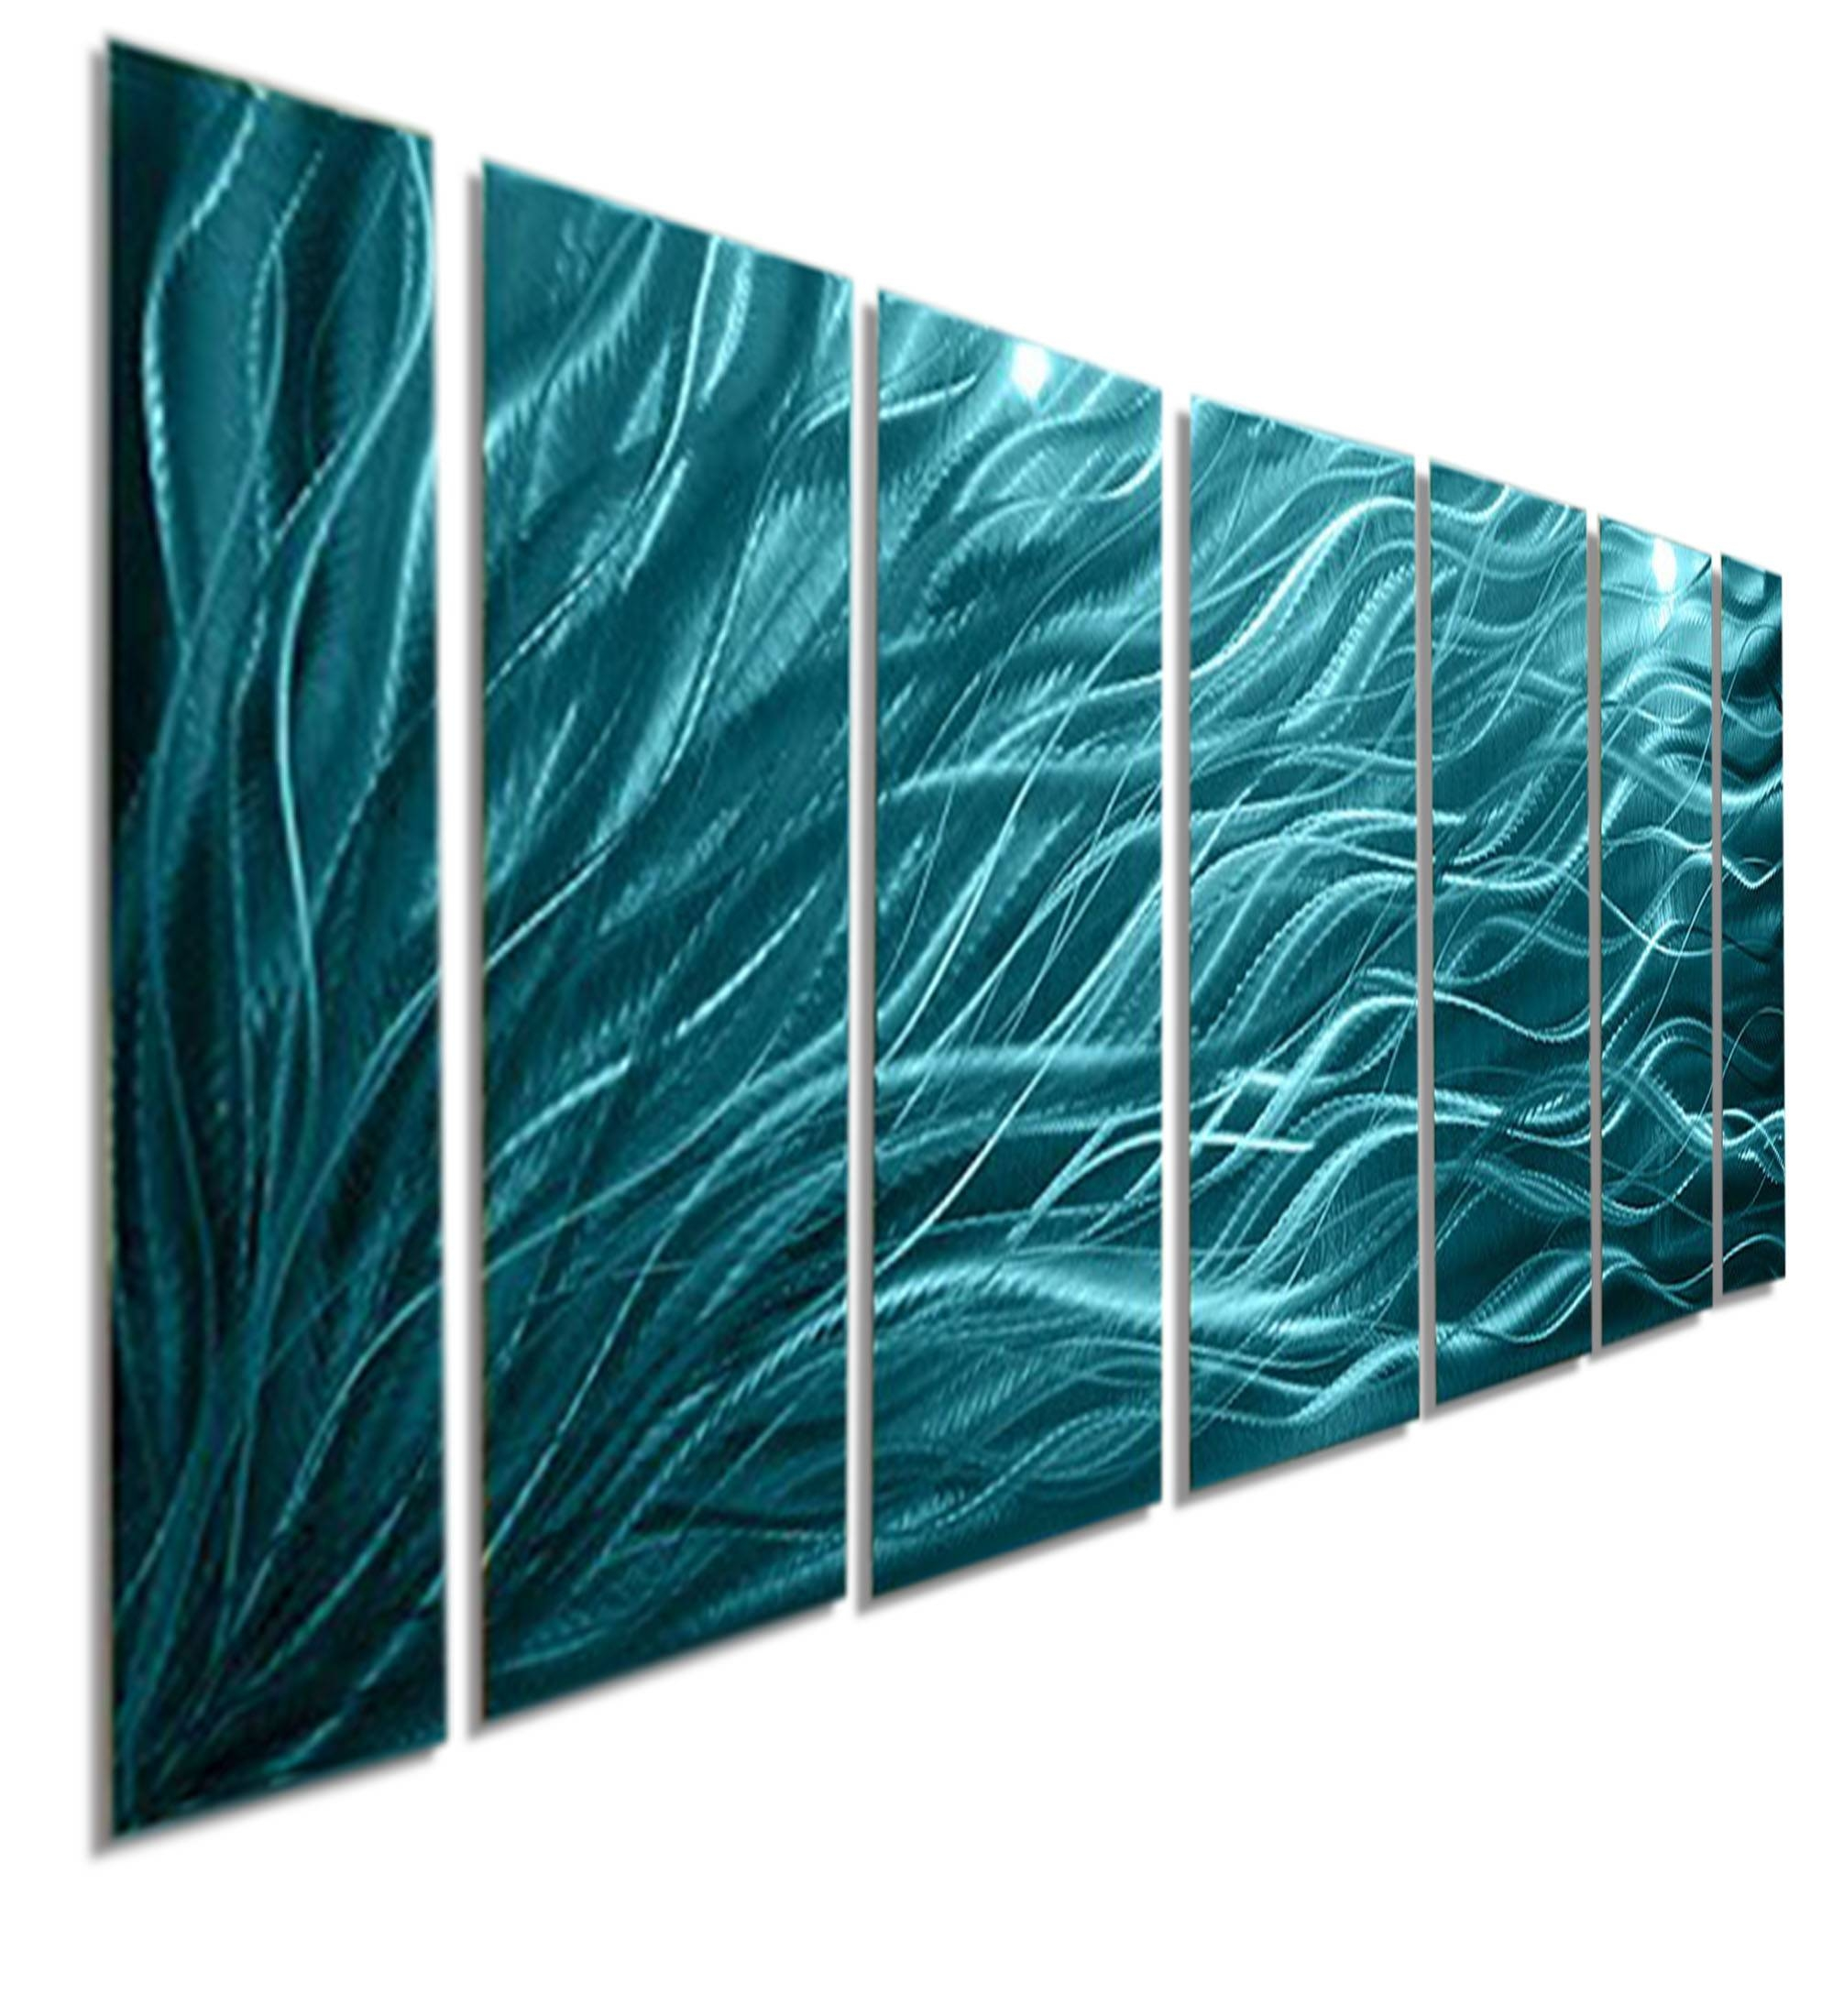 Rays Of Hope Aqua – Large Modern Abstract Metal Wall Artjon With Regard To Newest Large Abstract Metal Wall Art (View 15 of 20)